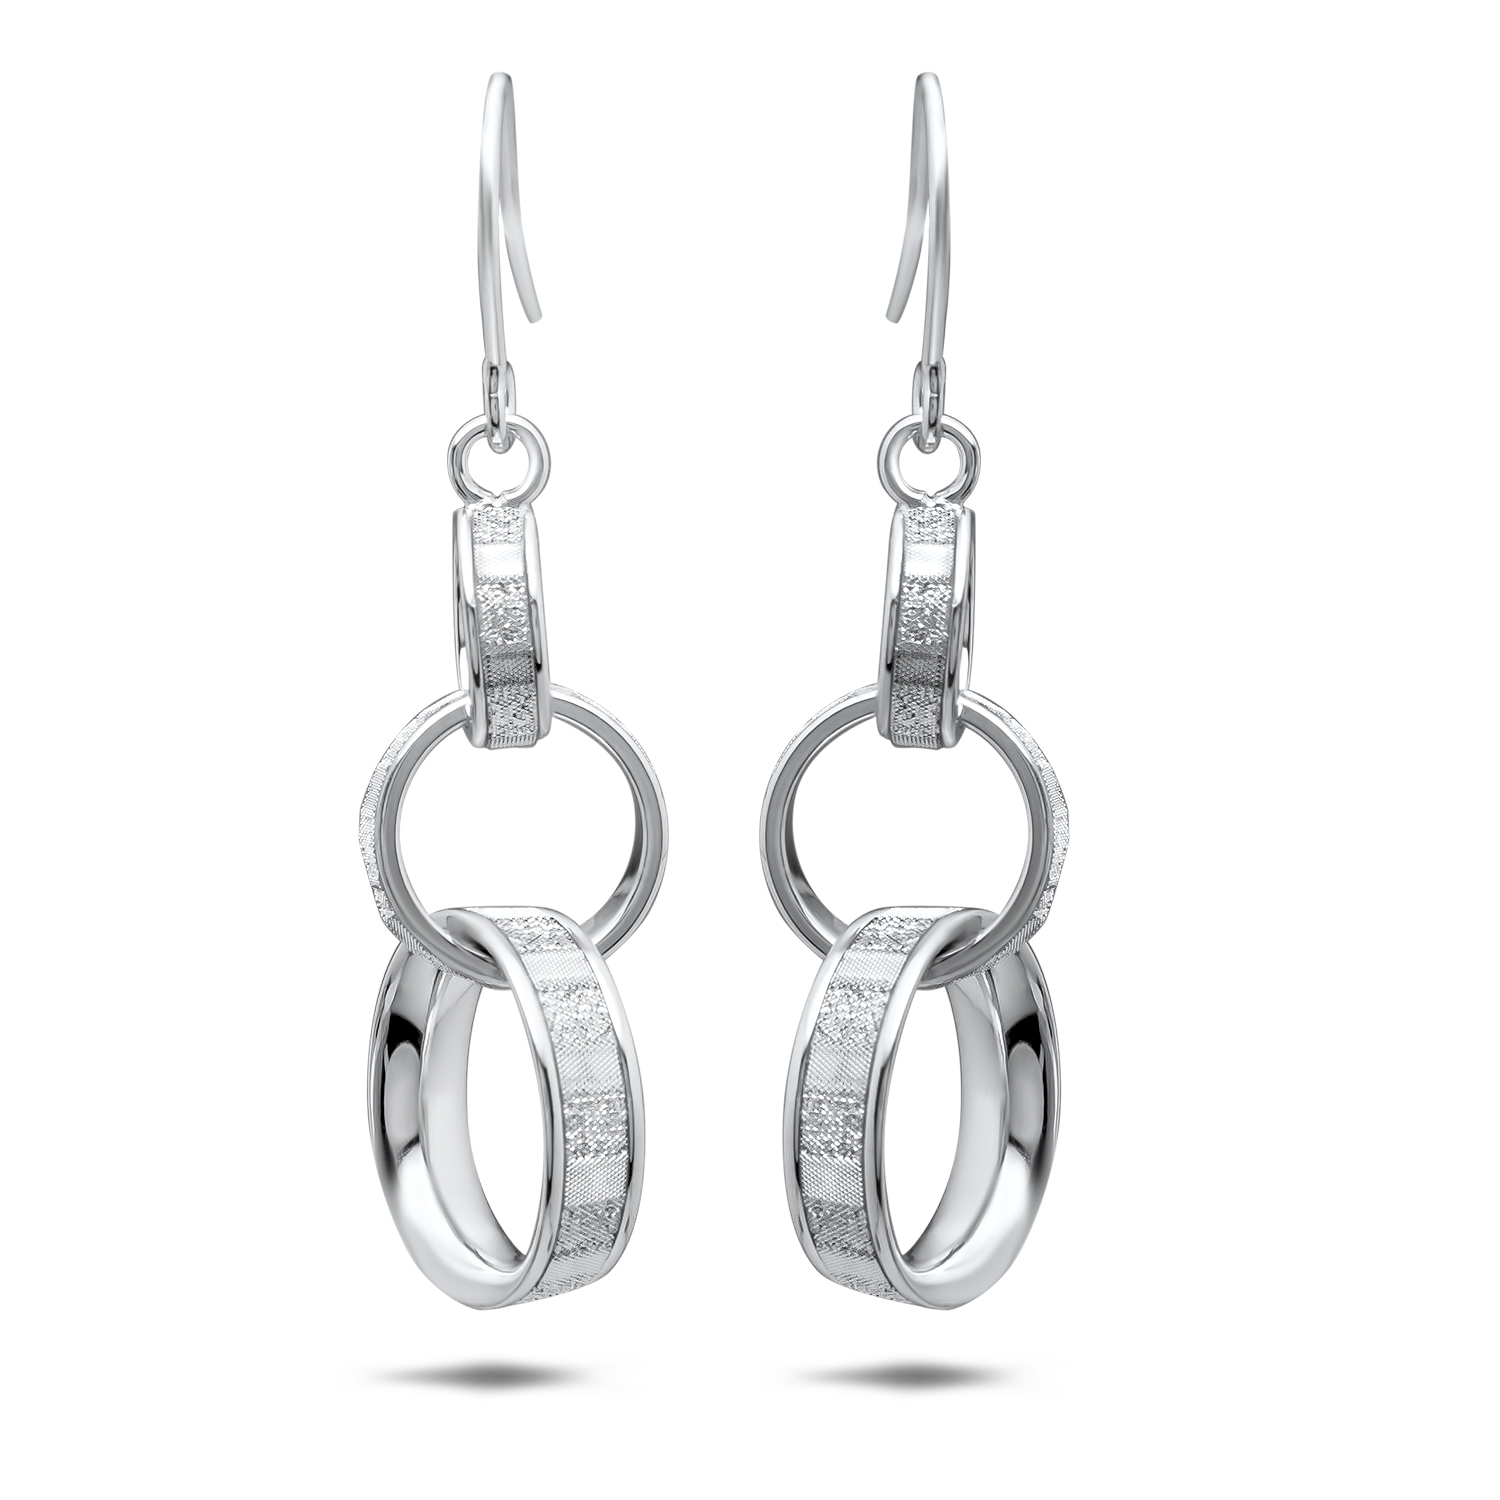 14k White Gold Glimmer Infused Dangle Earrings